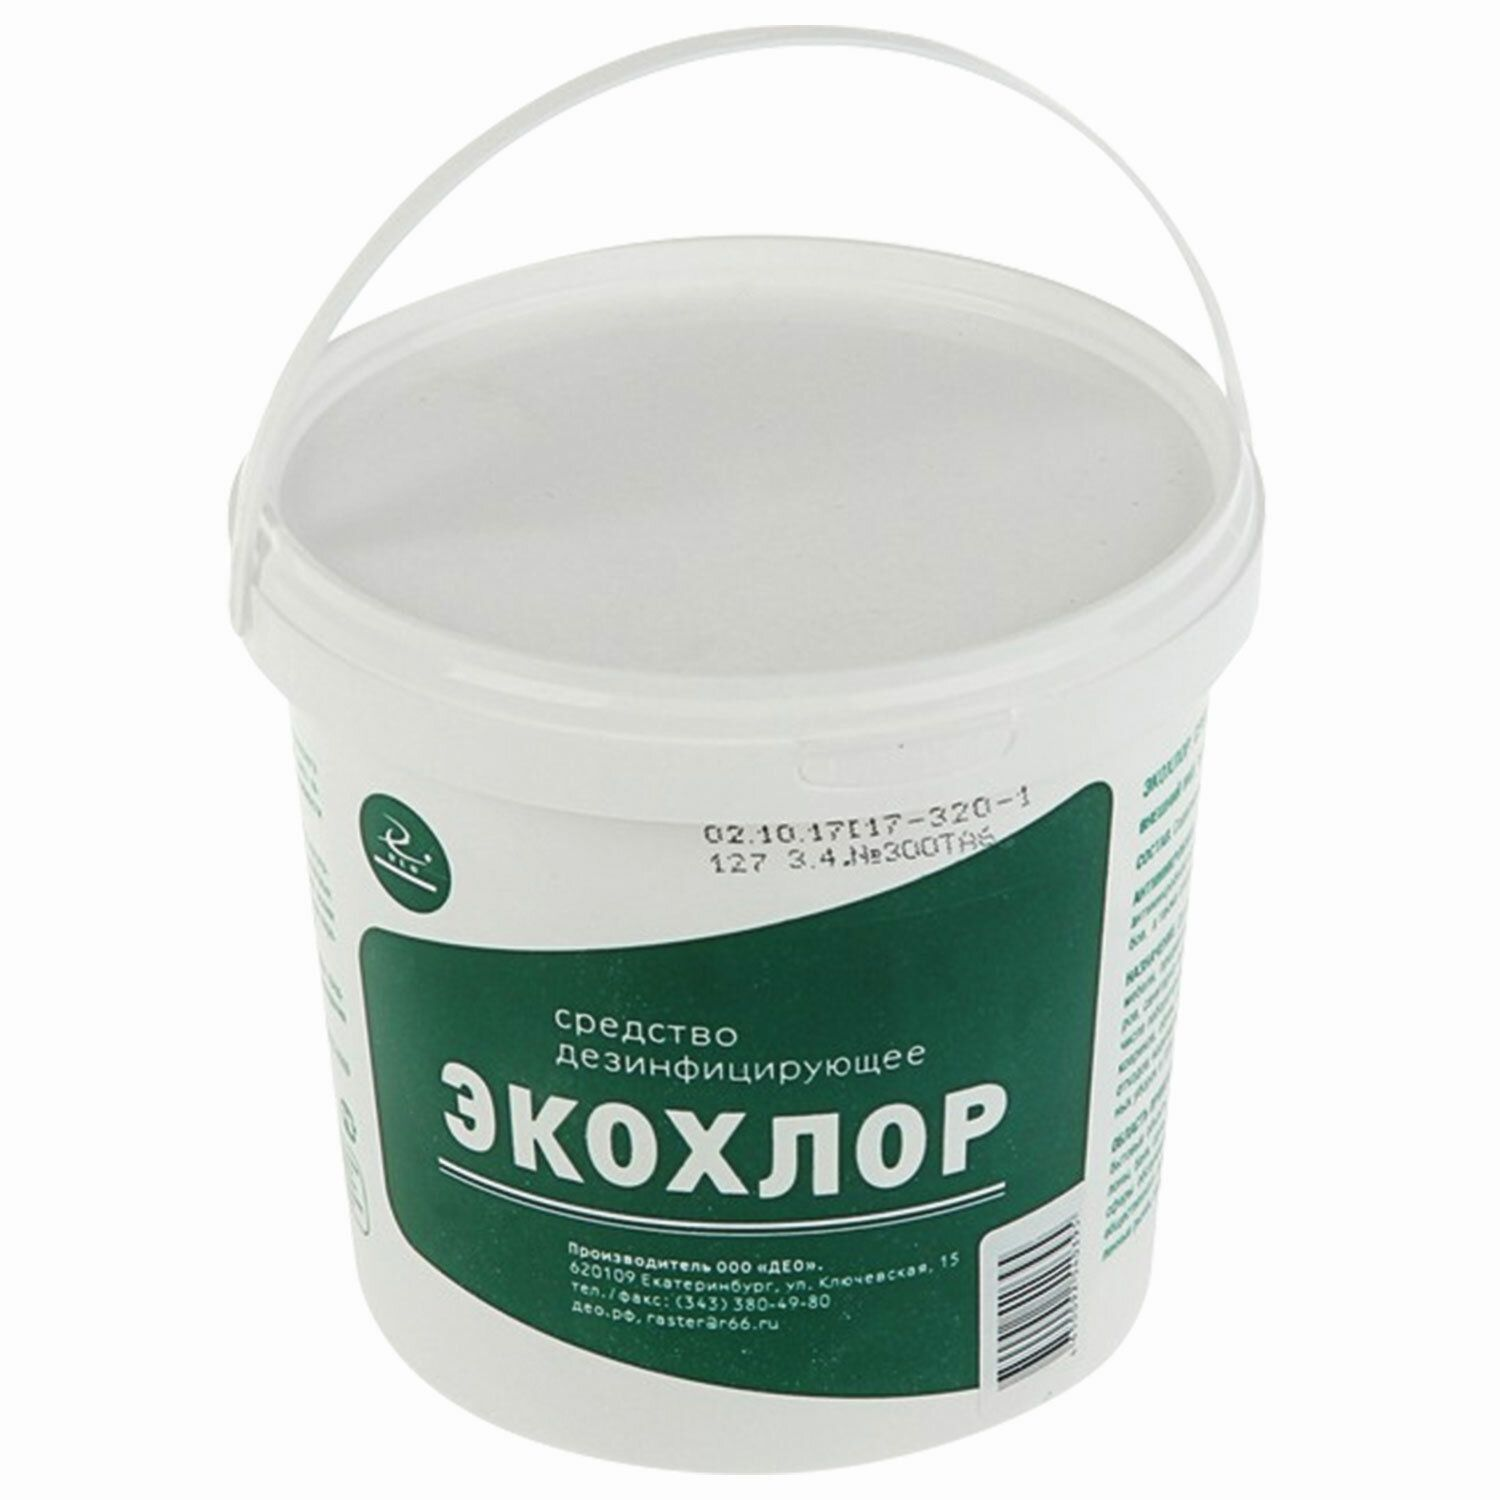 ECOCHLOR / Disinfectant 1 kg, tablets 300 pcs.